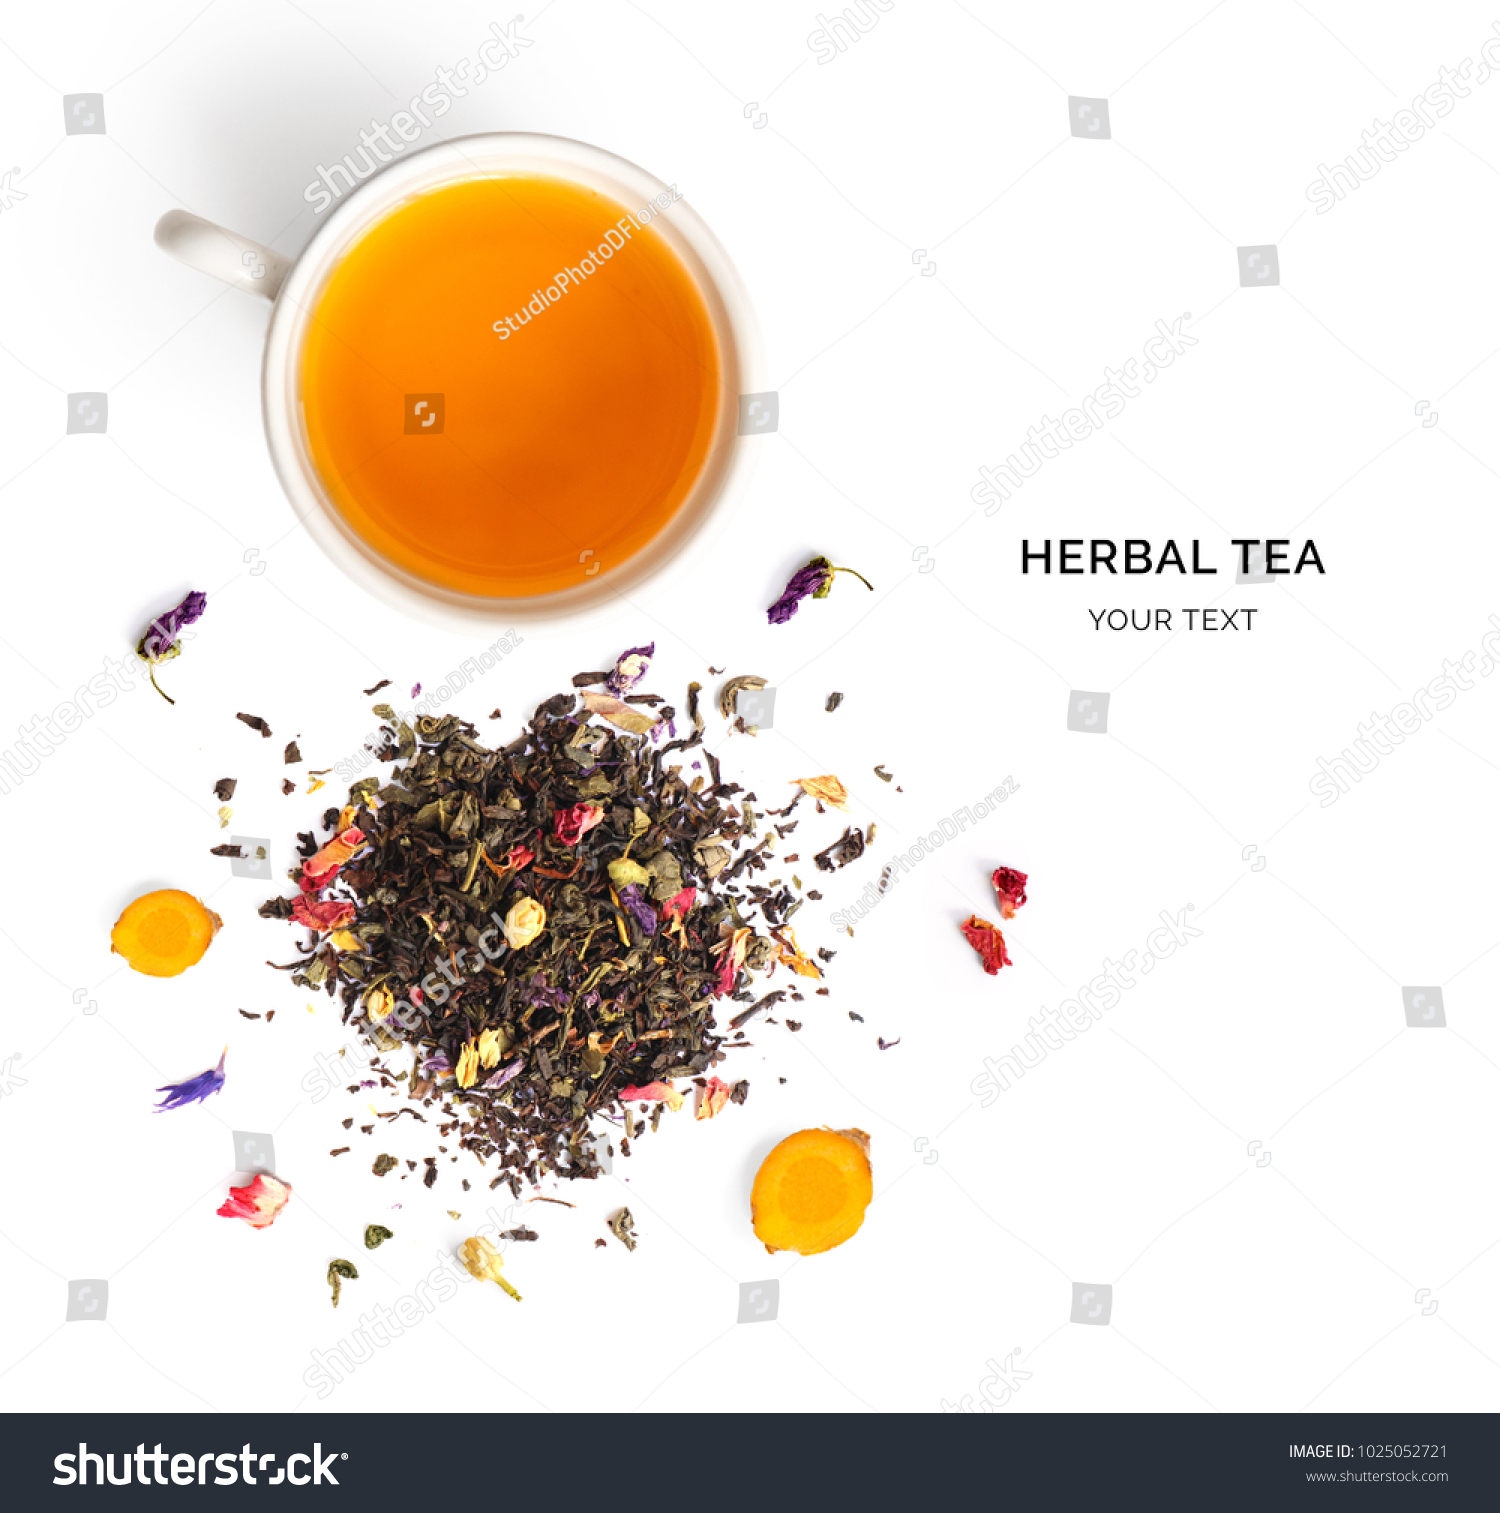 Creative layout made of cup of herbal tea on a white background. Top view. #1025052721